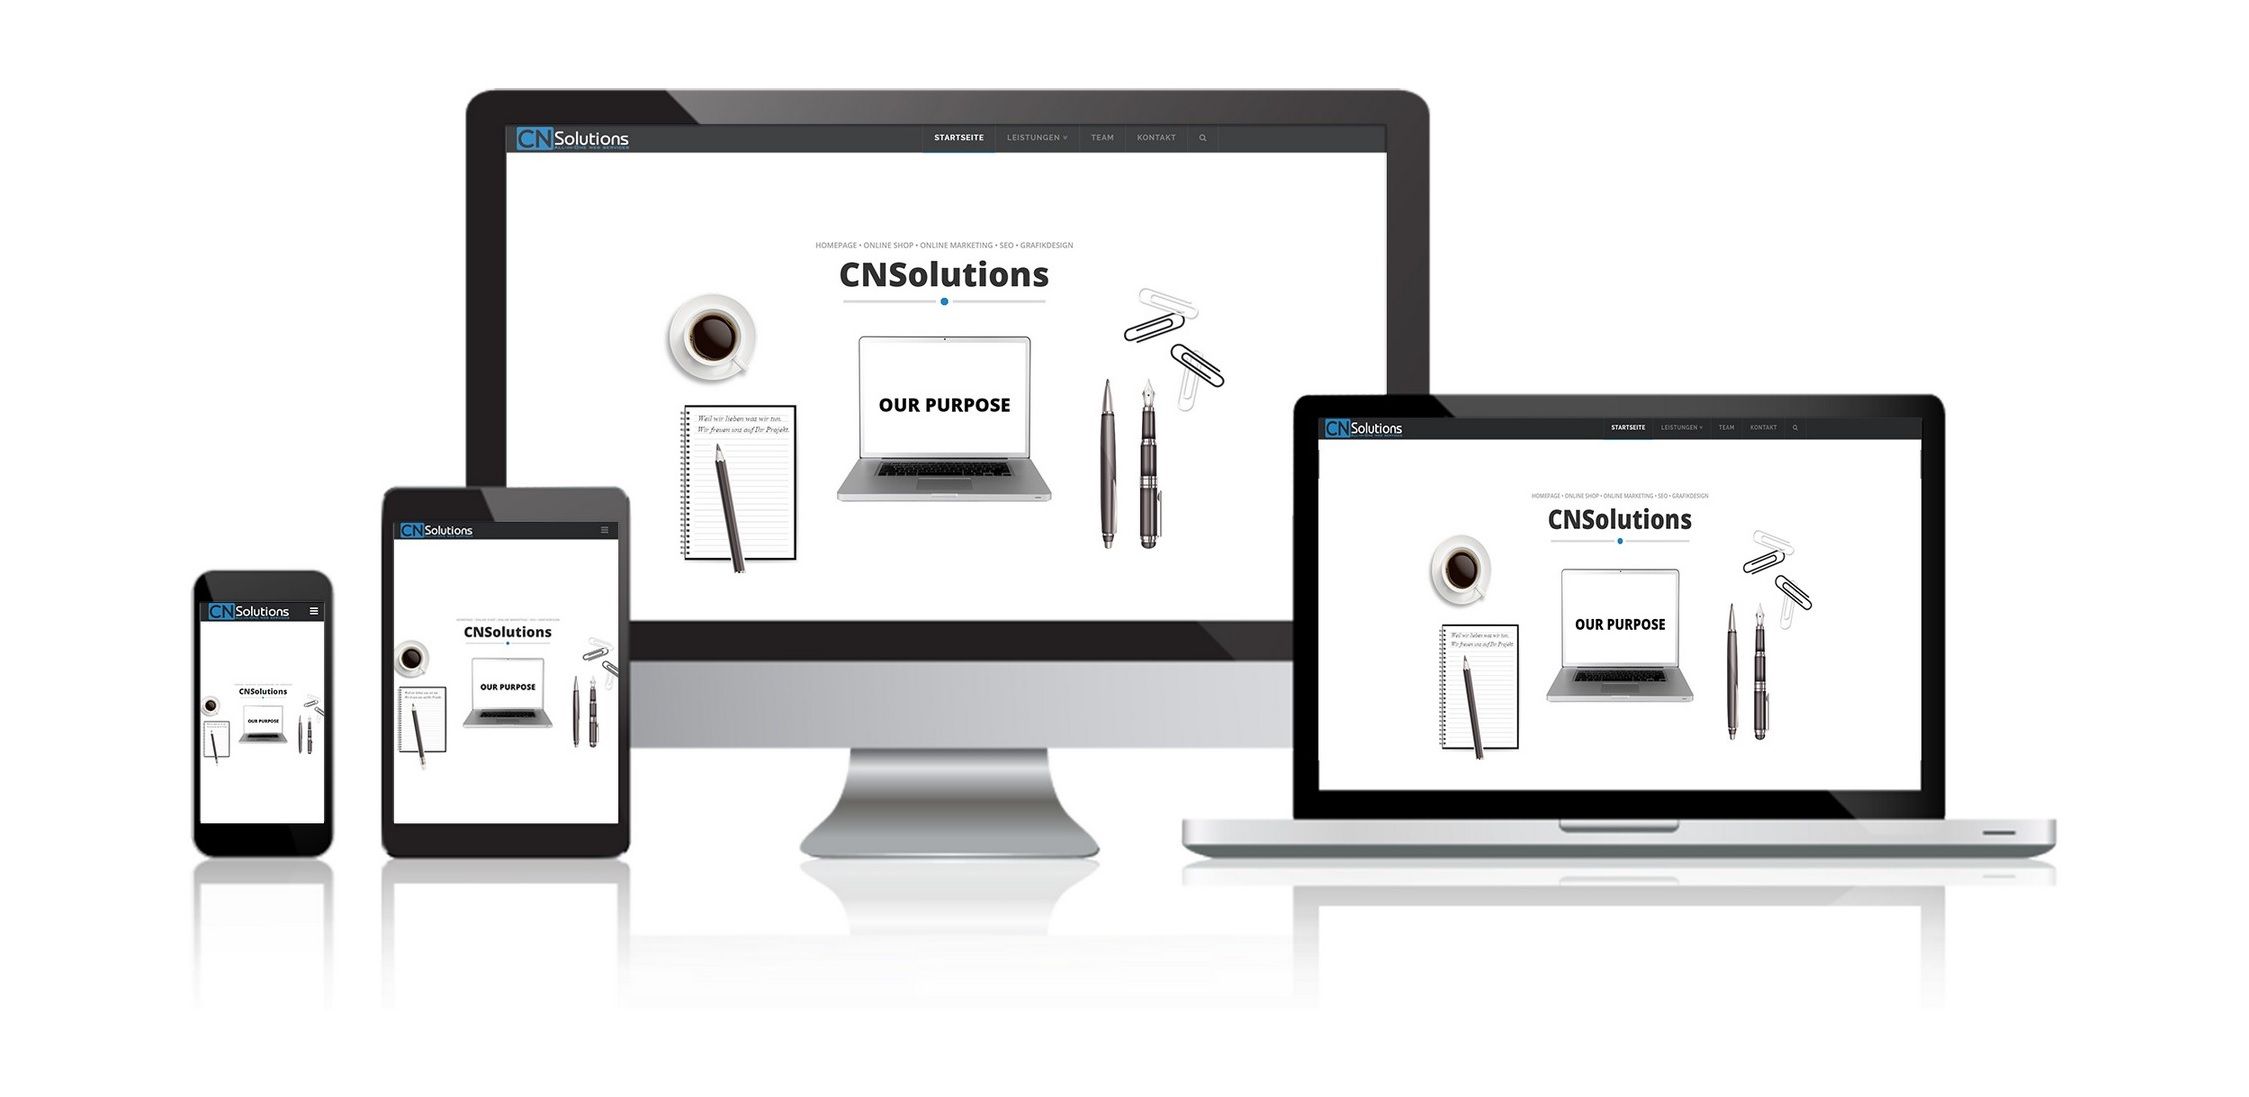 CNSolutions All-in-One web services - SEO - Webdesign - Online Marketing - Homepage und Online Shop - Grafikdesign